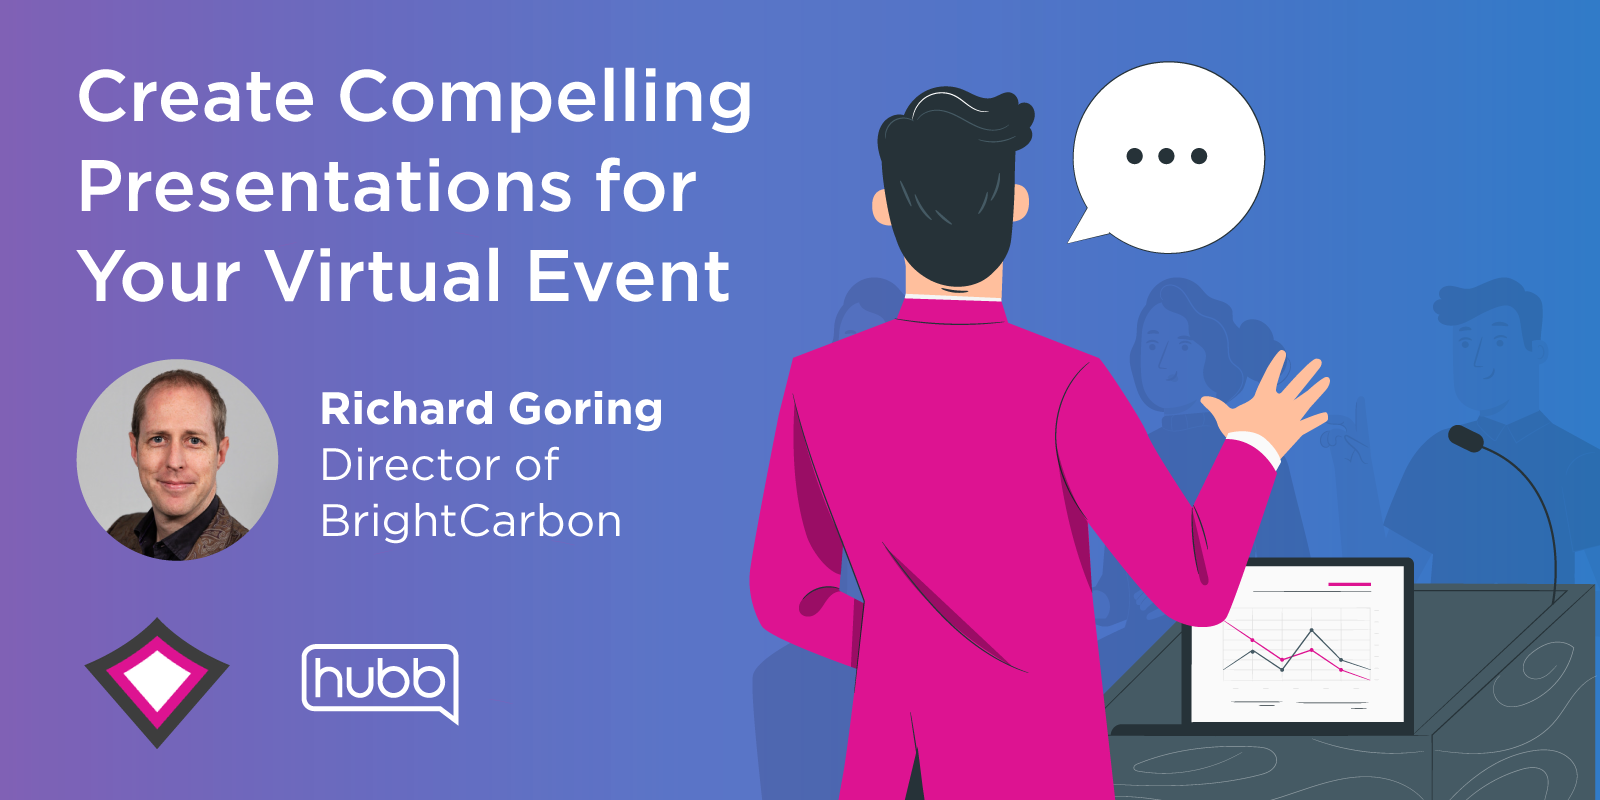 Create Compelling Presentations for Your Virtual Event